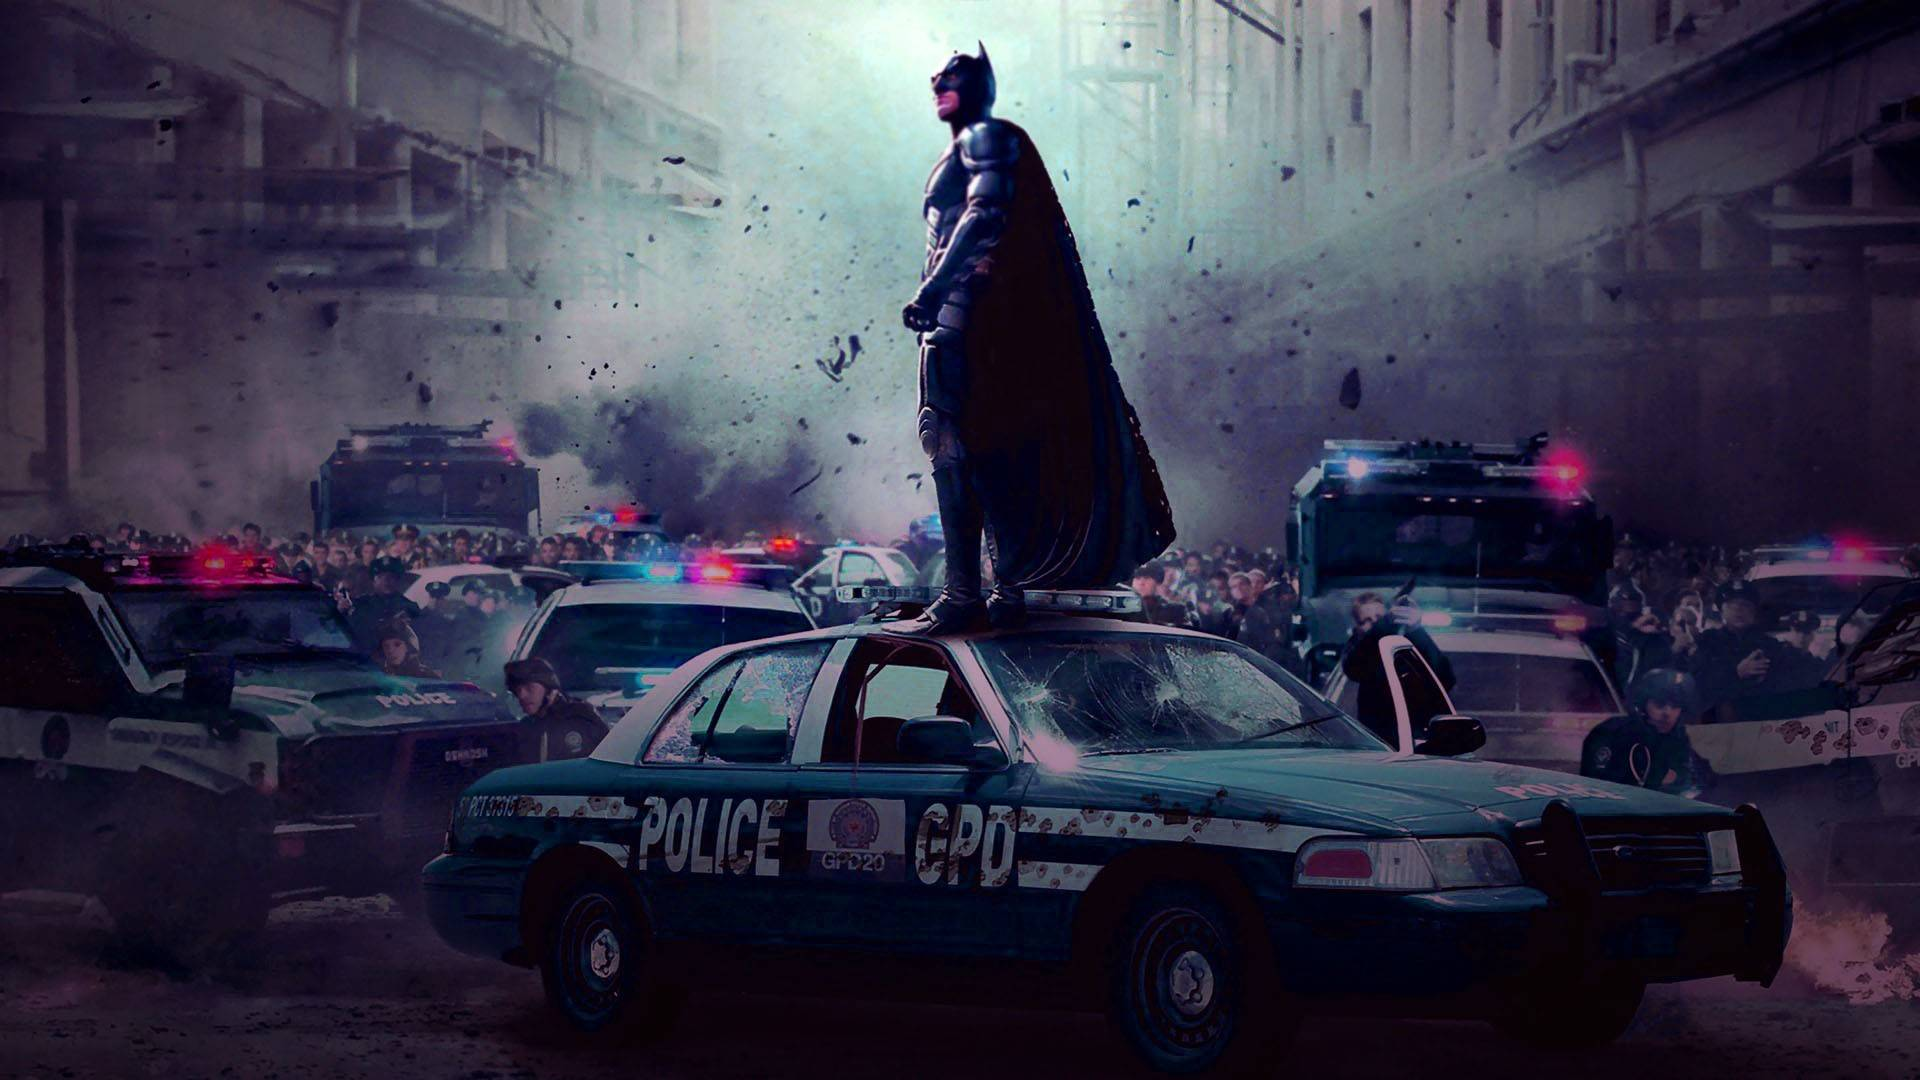 Batman Police 19201080 Wallpaper 2280021 1920x1080